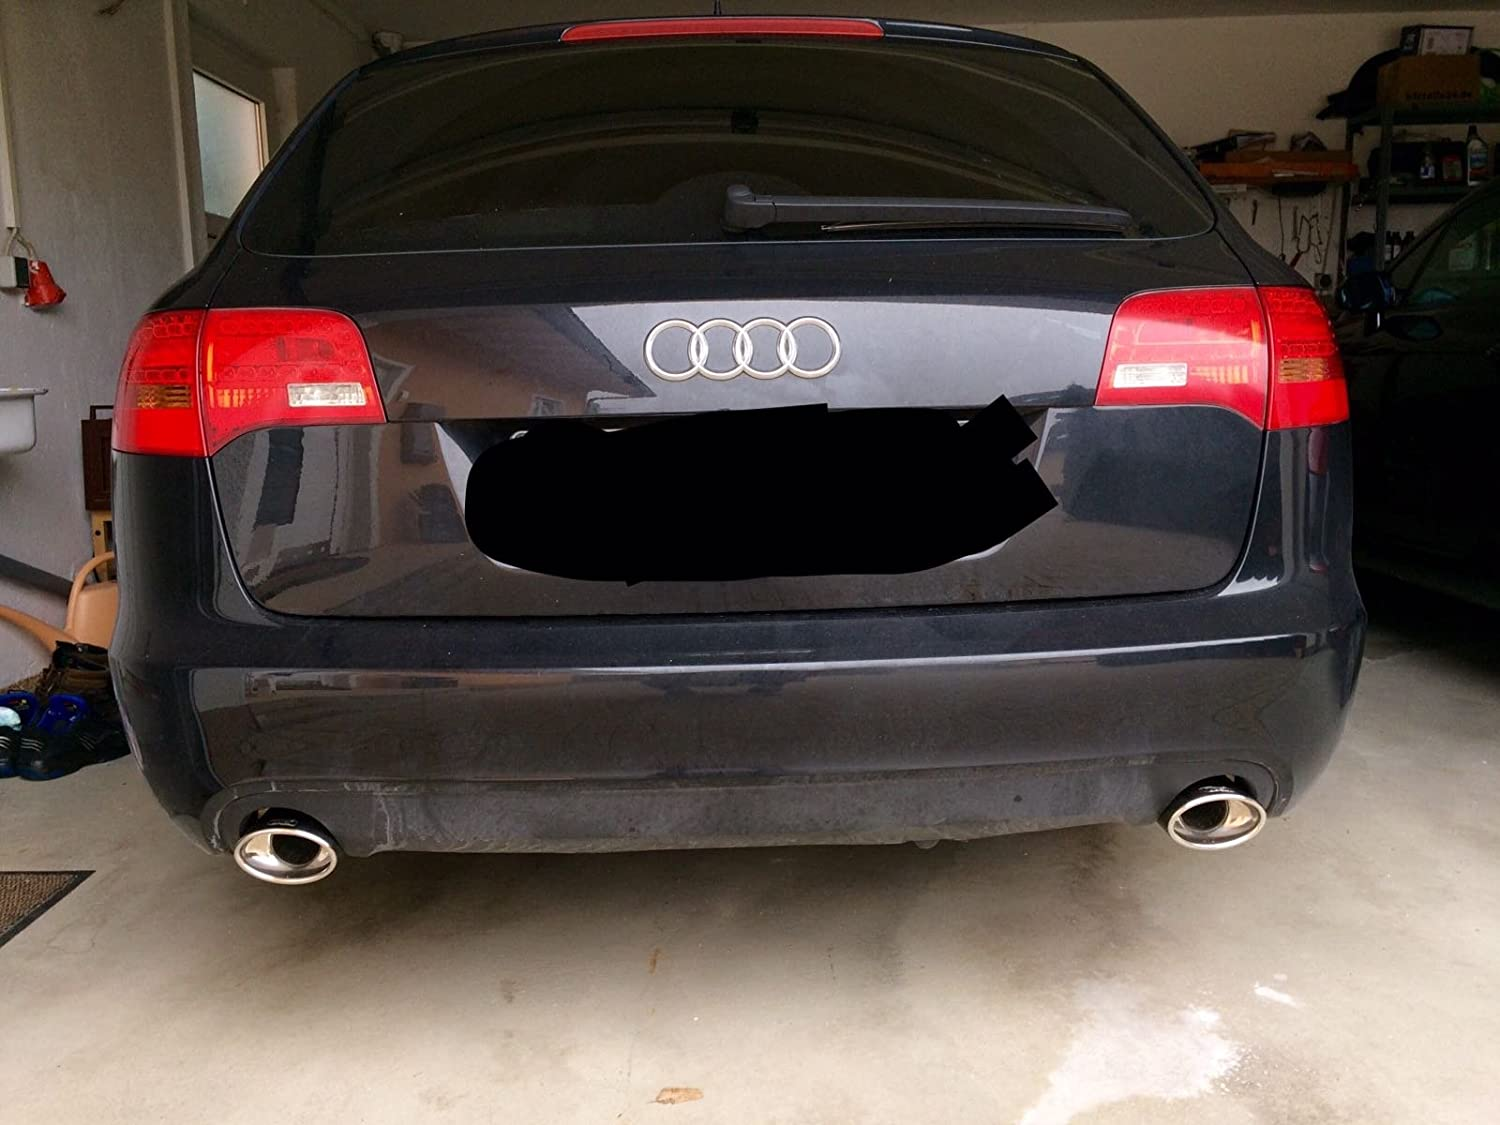 Auto-Tuning & -Styling Duplex Endrohre AUDI A6 C6 4F oval 120x80mm ...